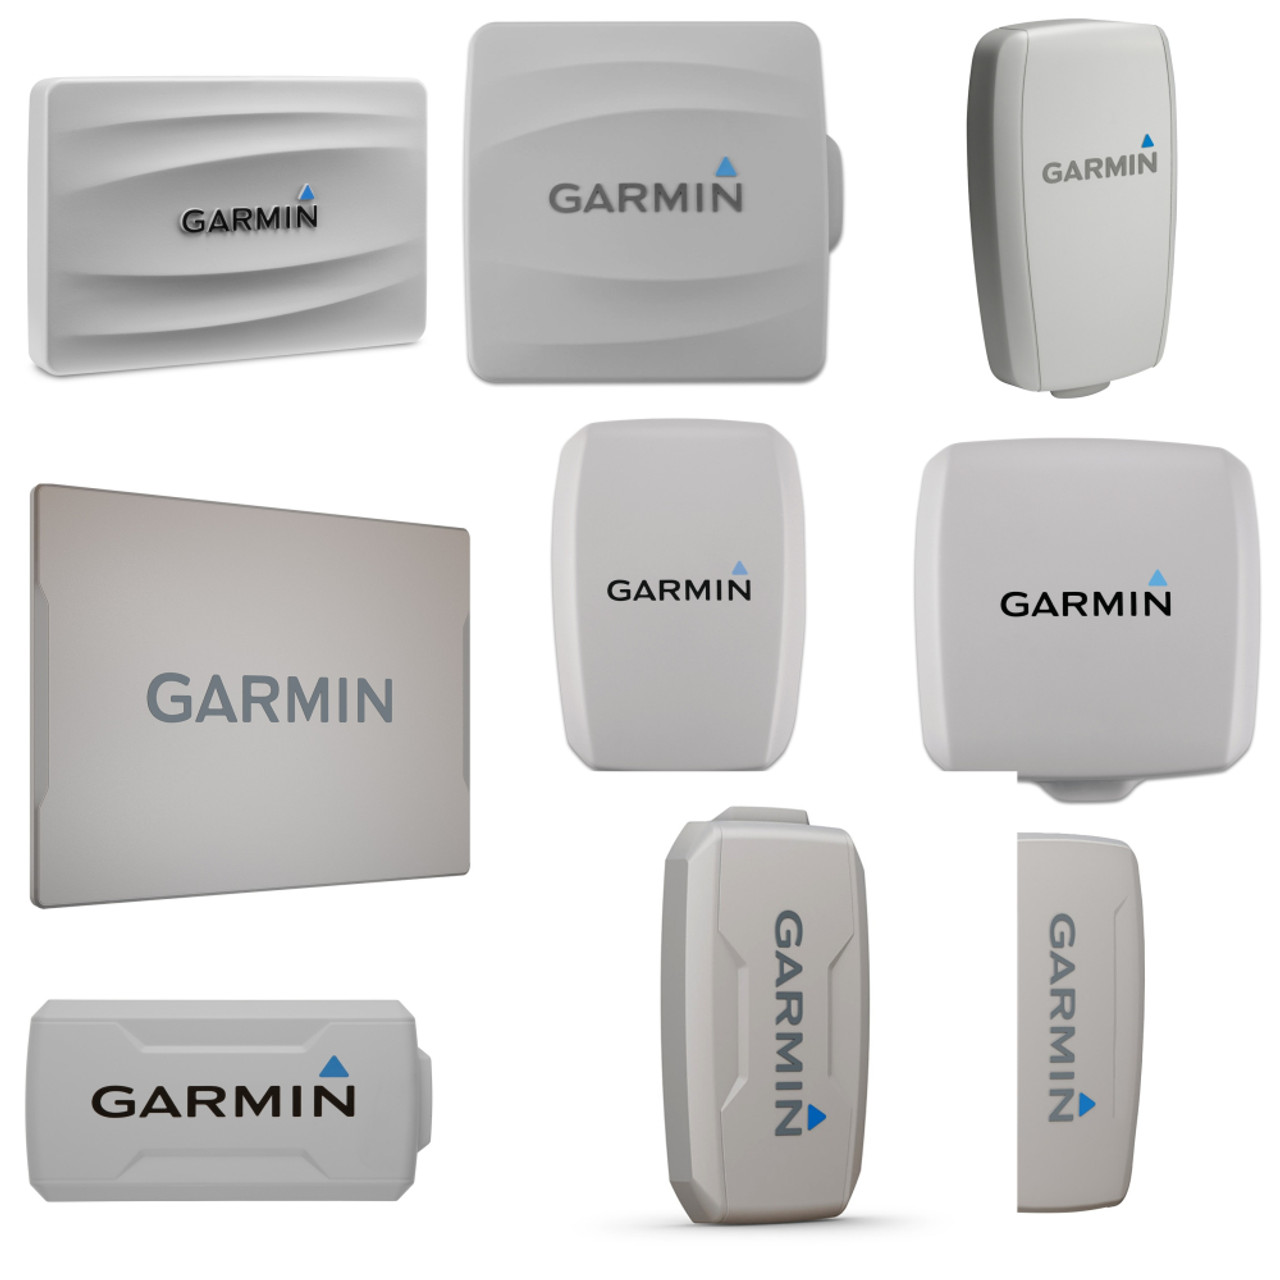 Garmin 010-12247-02 Protective Cover For Echo Map 5Xdv Series